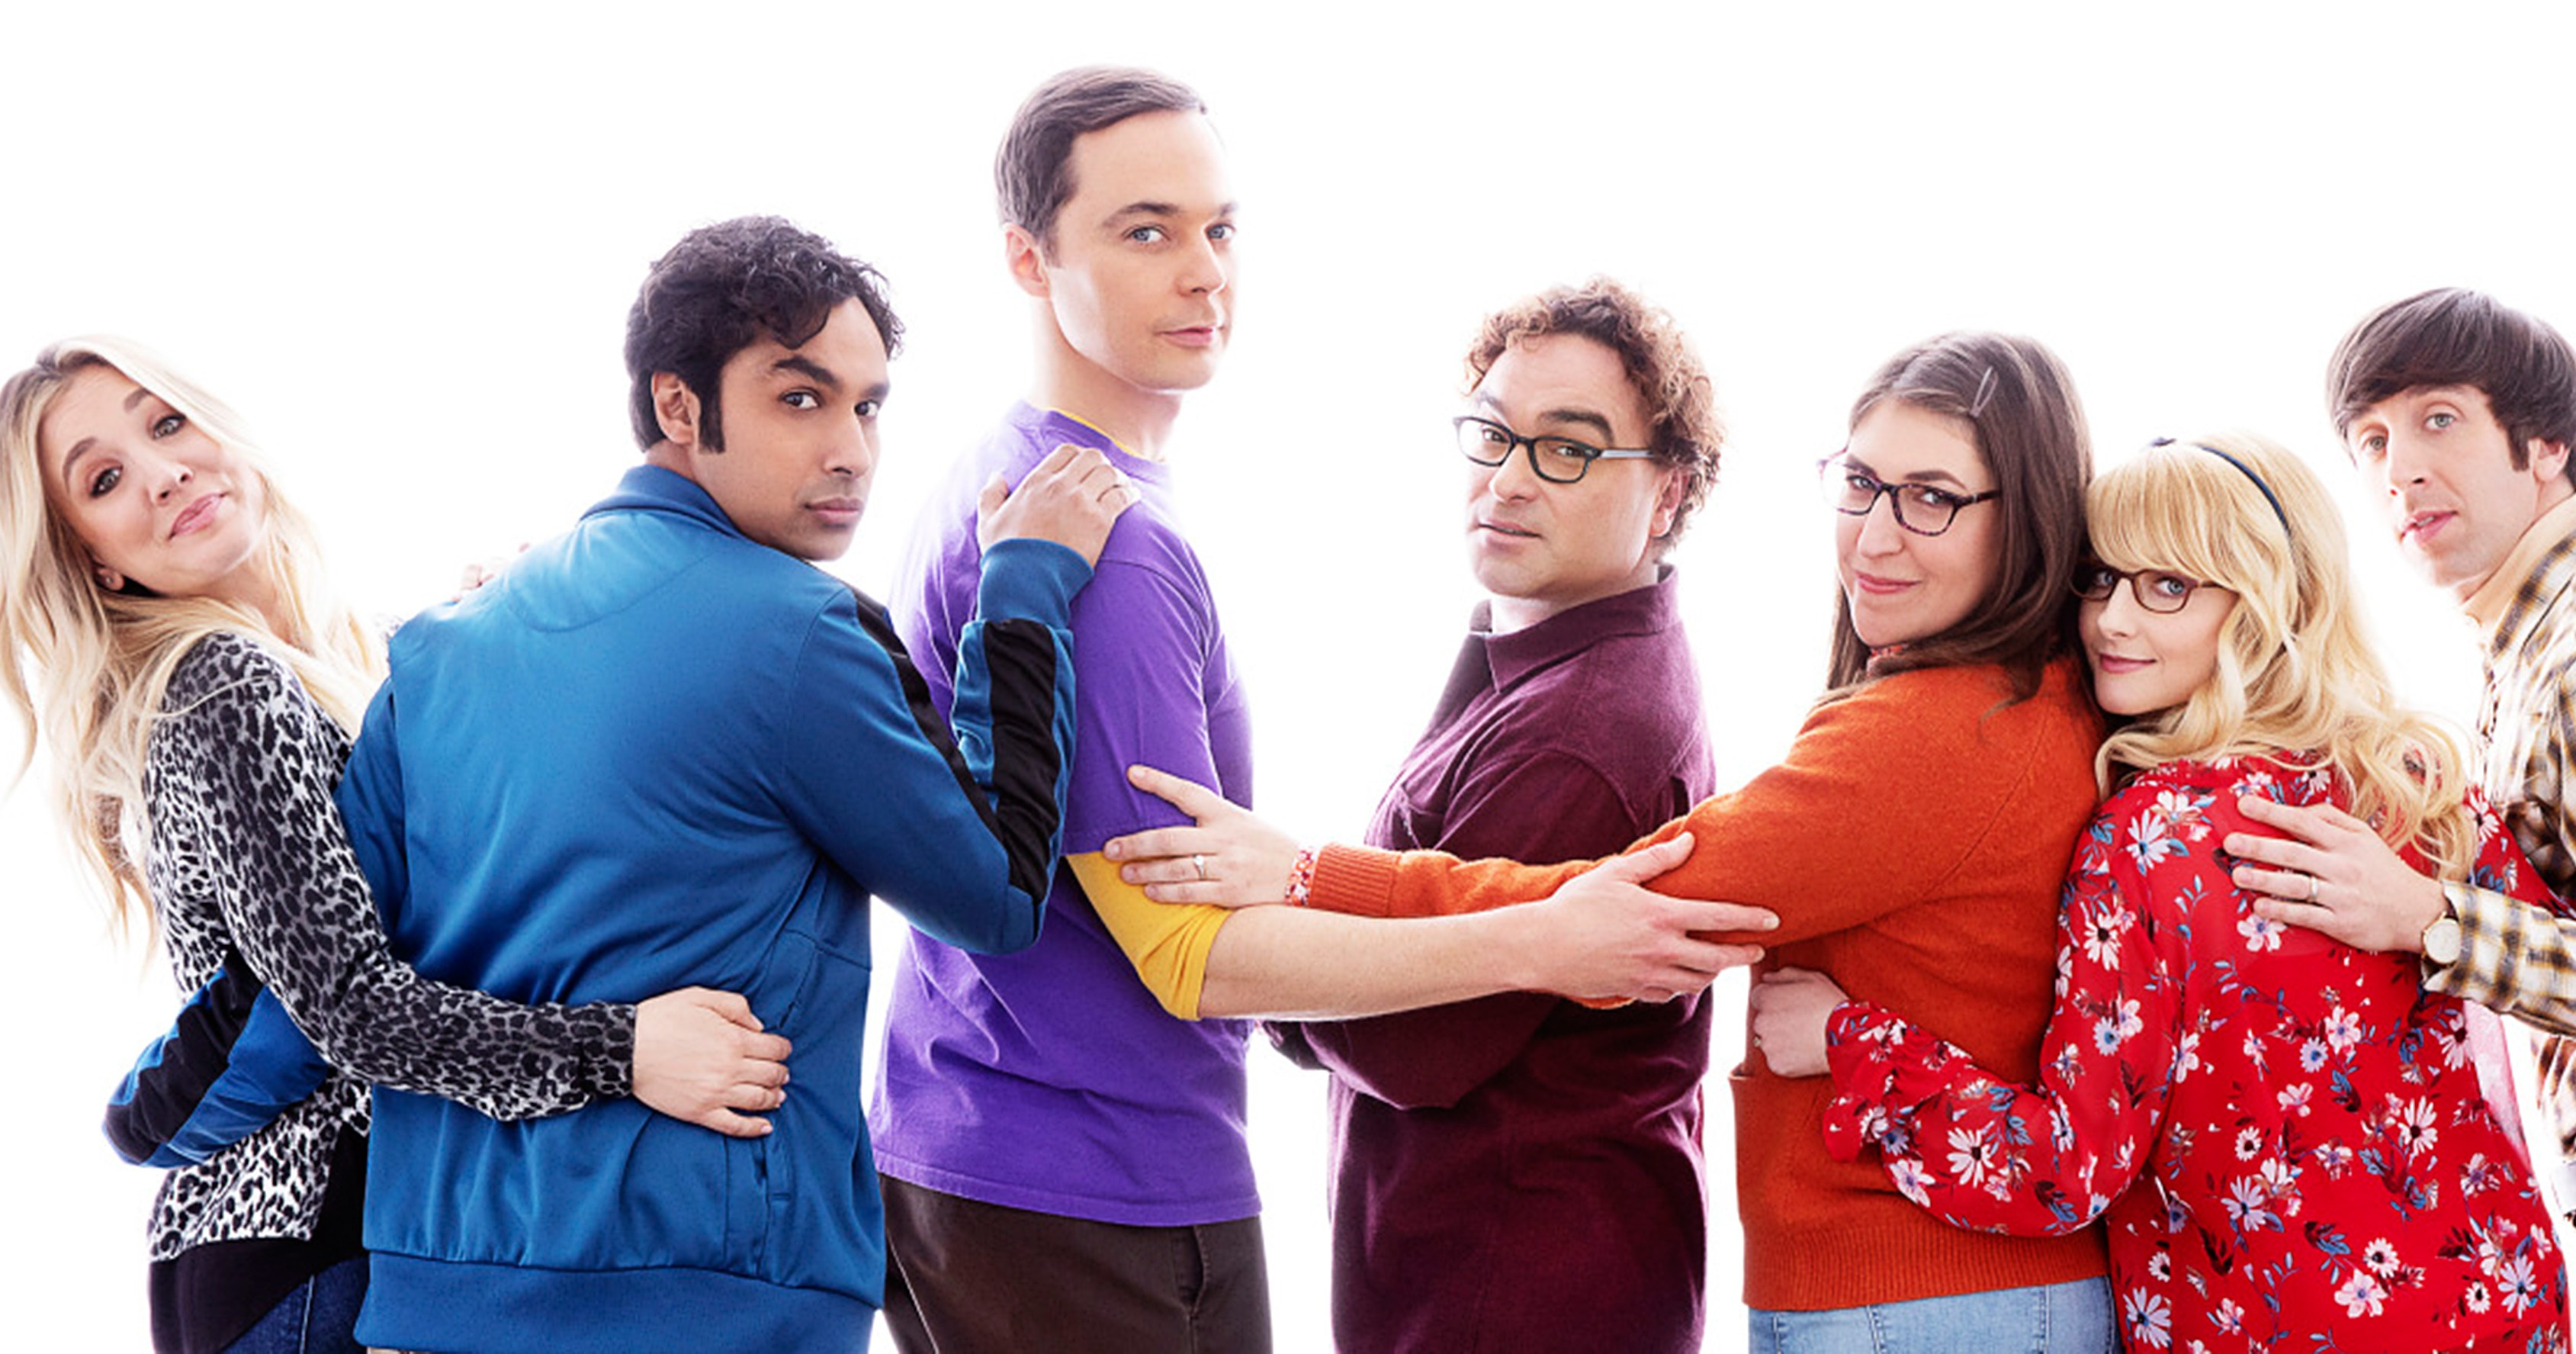 'Big Bang Theory' Cast From Season 1 to the Series Finale: Photos